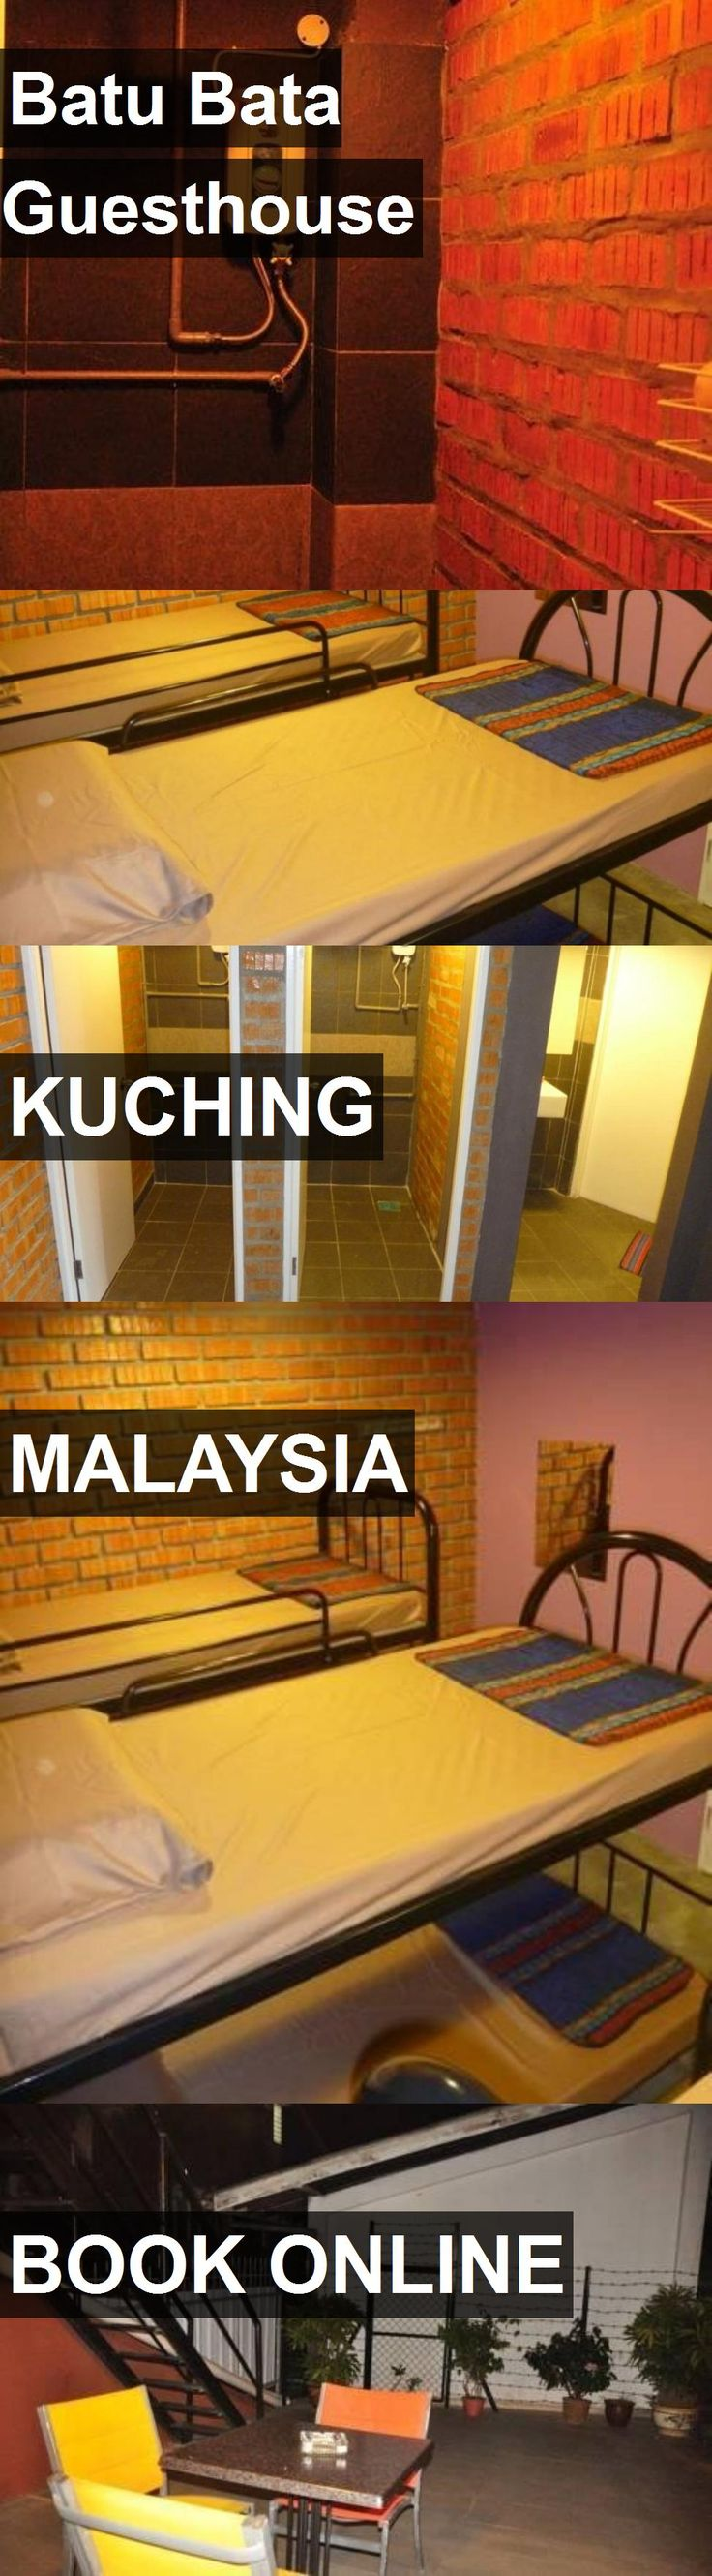 Hotel Batu Bata Guesthouse in Kuching, Malaysia. For more information, photos, reviews and best prices please follow the link. #Malaysia #Kuching #BatuBataGuesthouse #hotel #travel #vacation